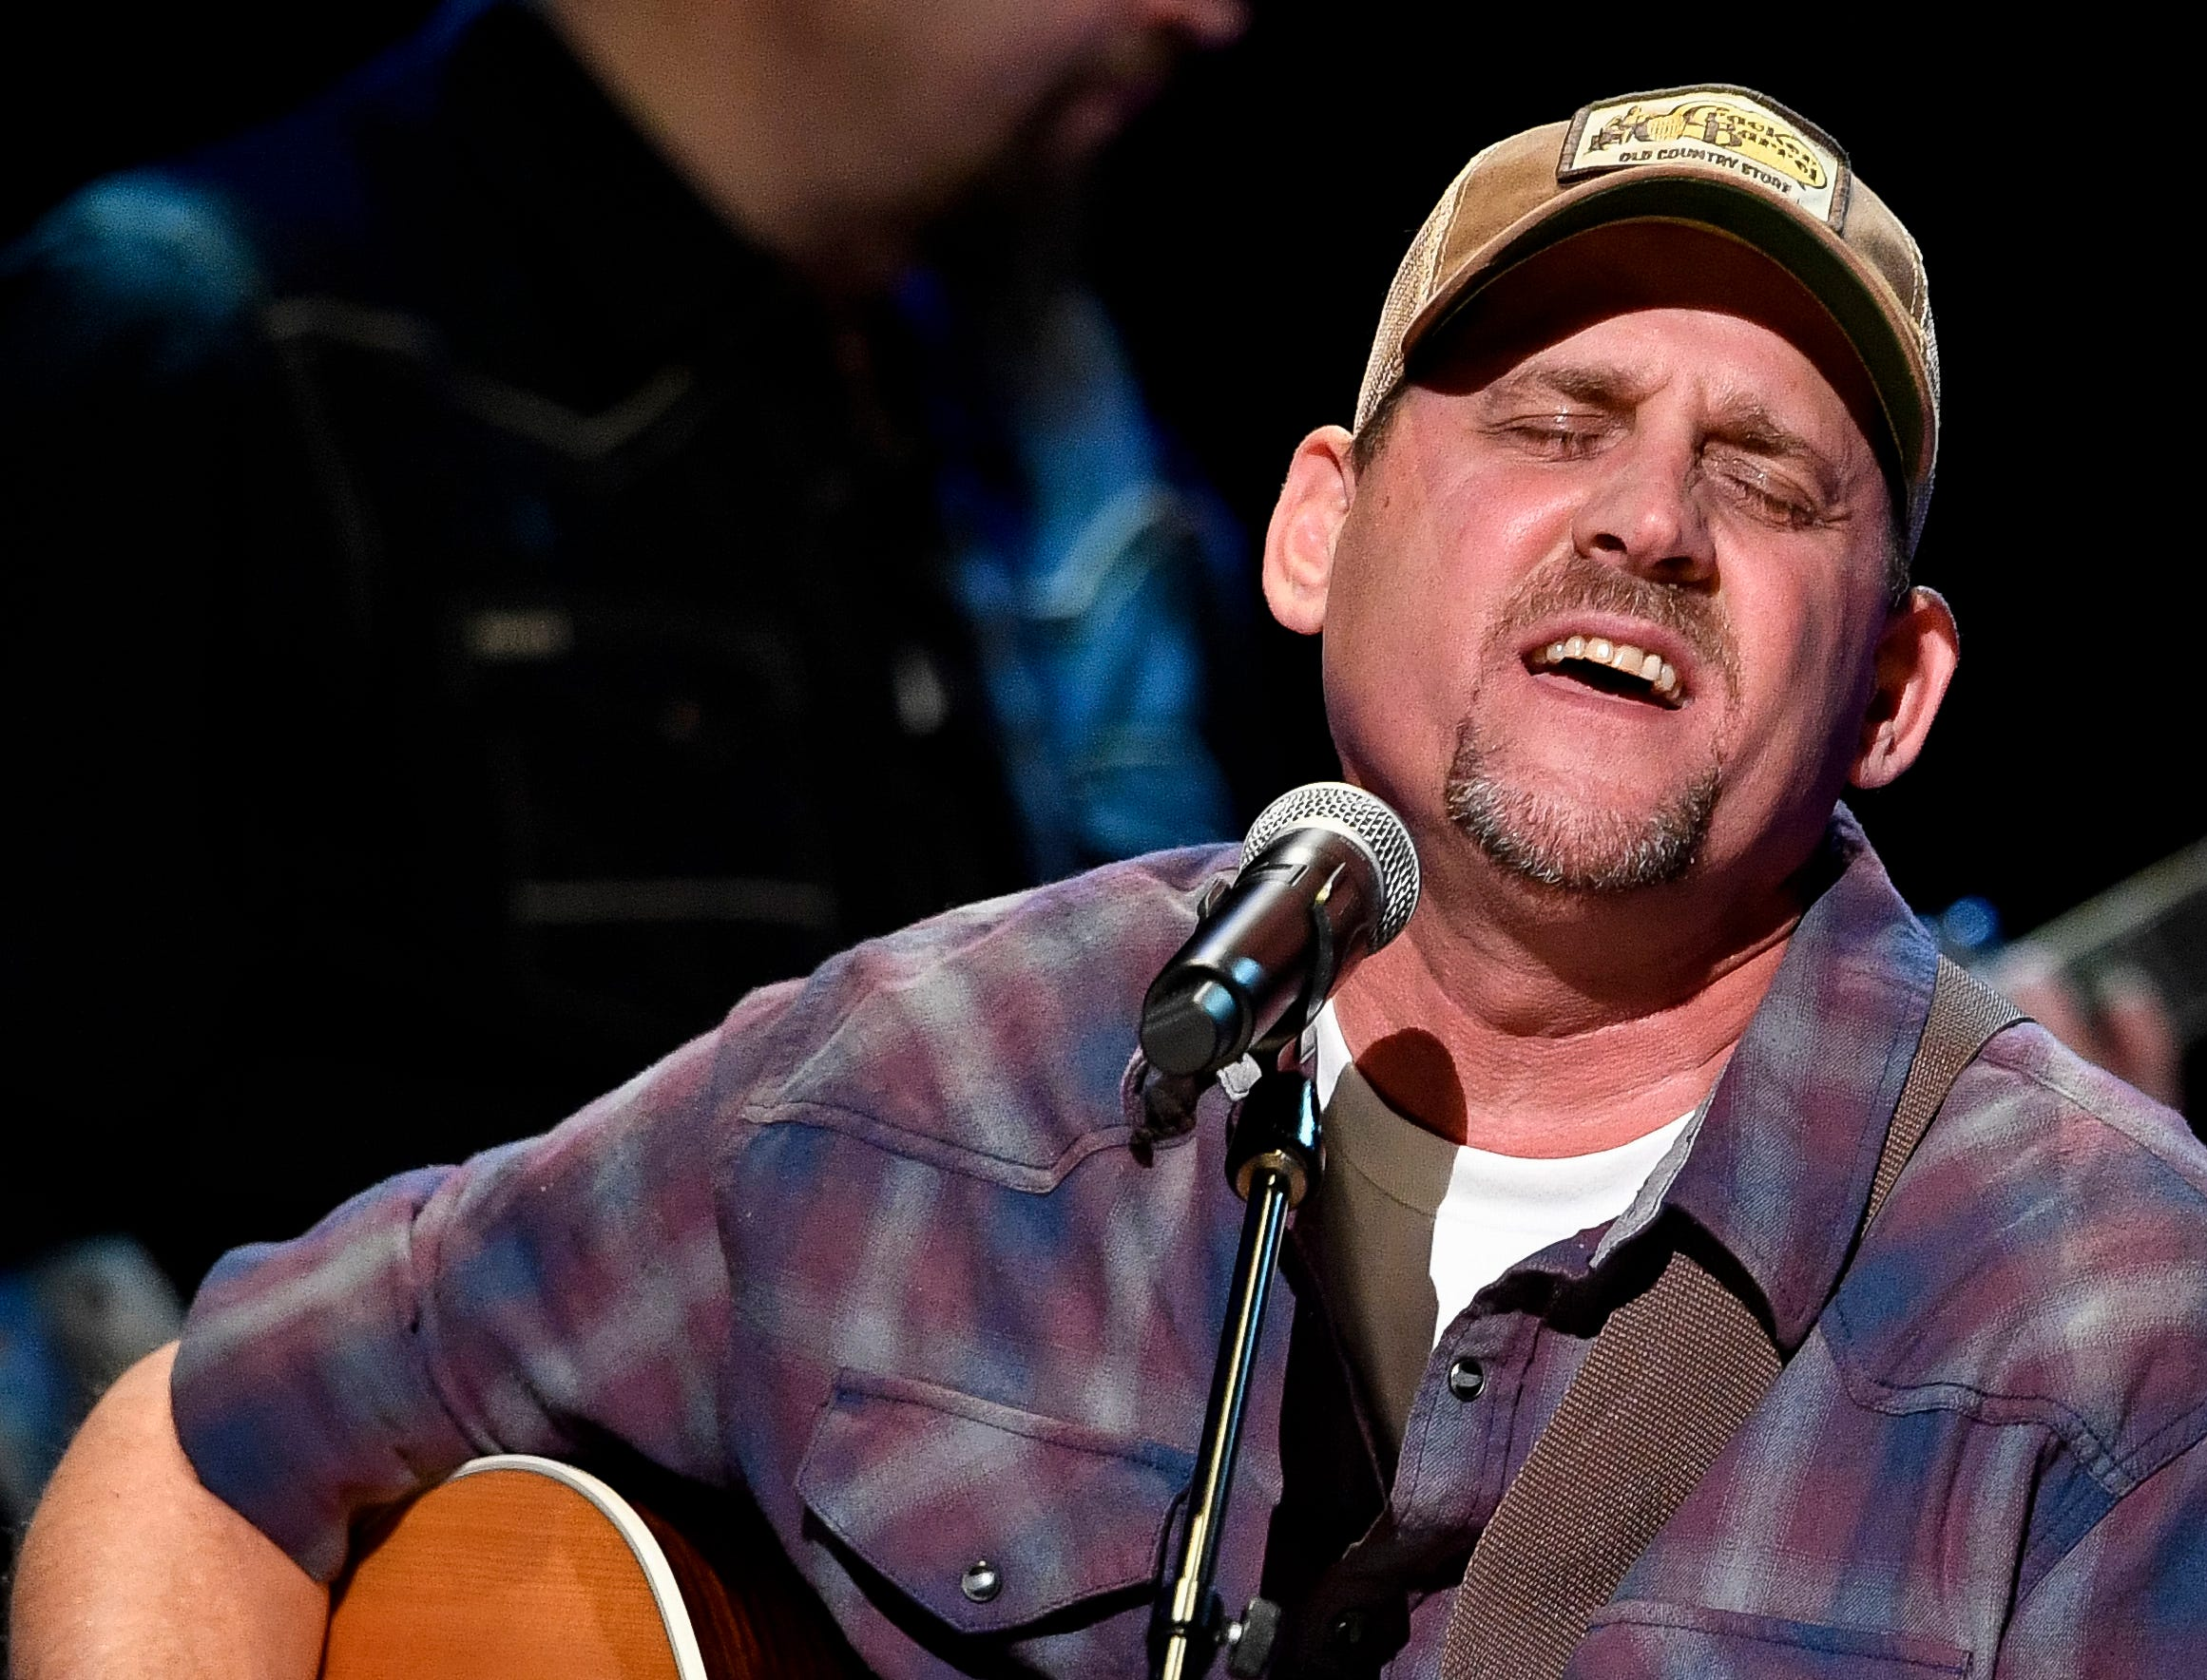 Neil Thrasher performs during the C'Ya On The Flipside Benefit Concert at the Grand Ole Opry House in Nashville, Tenn., Wednesday, Jan. 9, 2019.